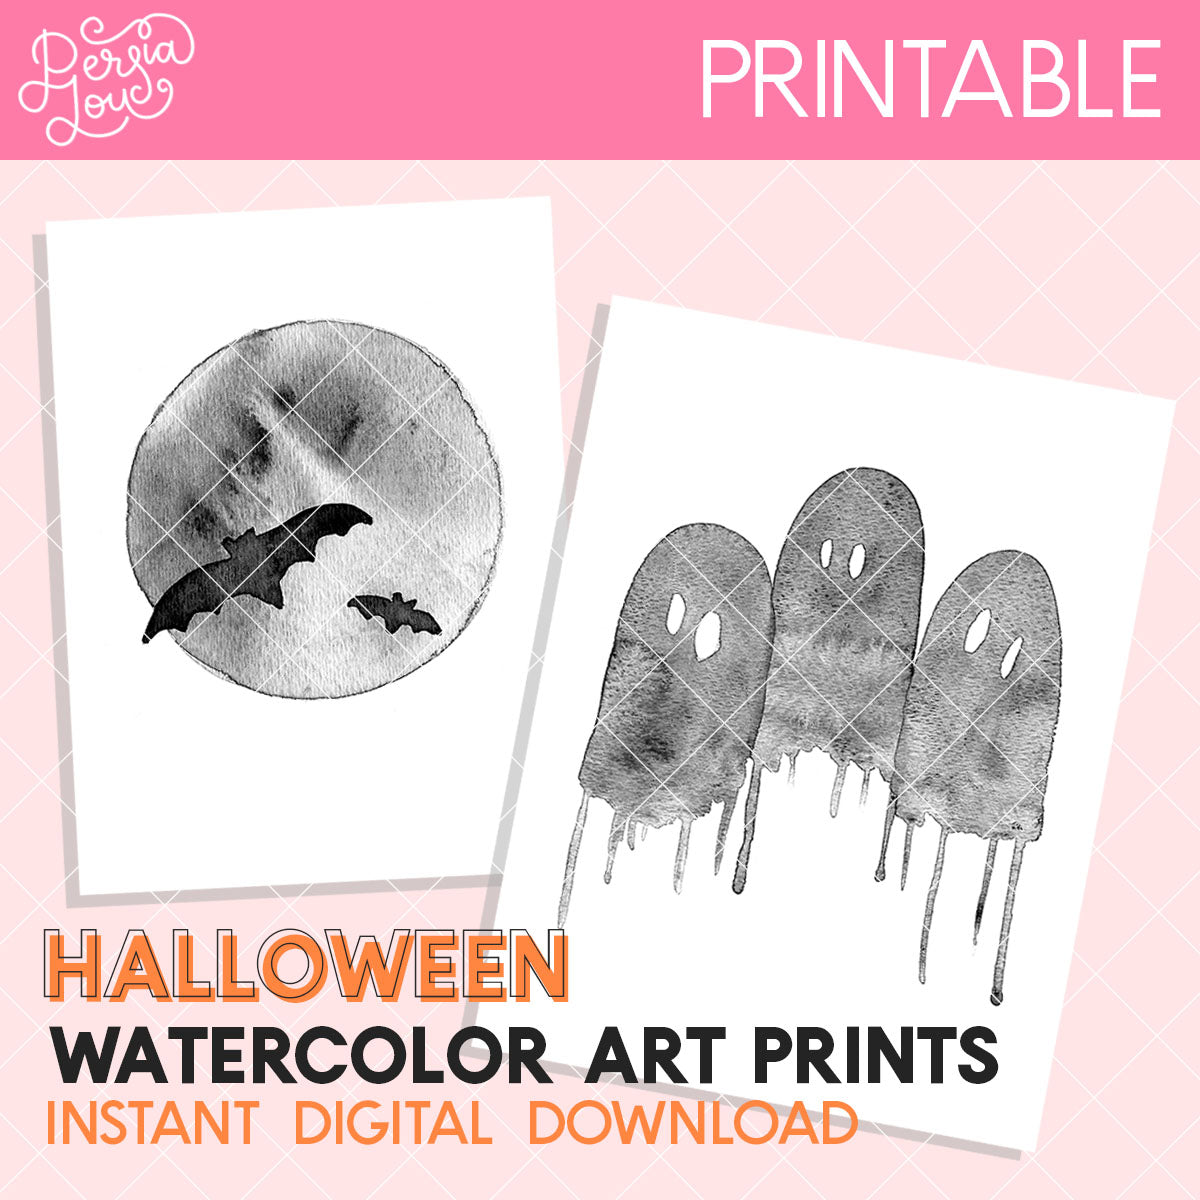 Watercolor Halloween Digital Art Prints